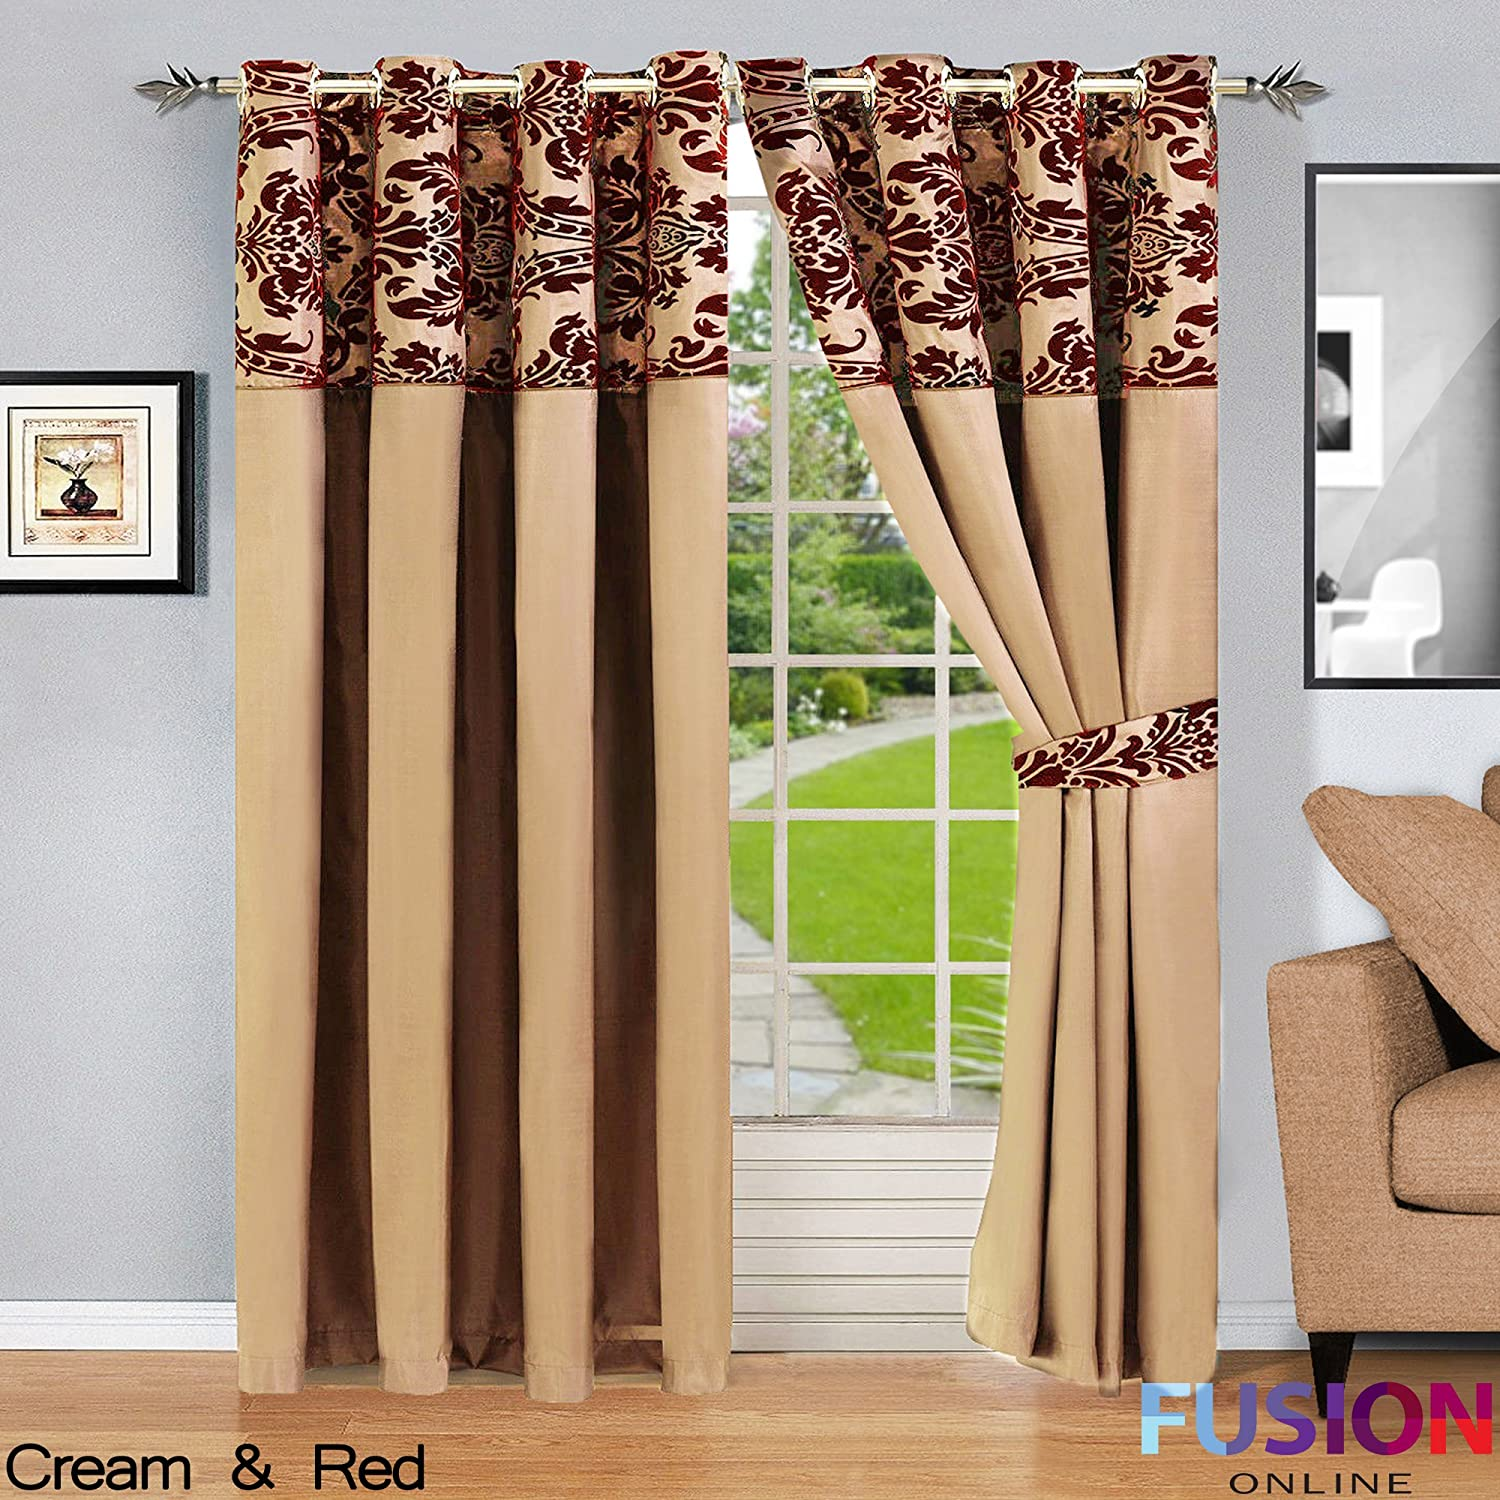 RING TOP FULLY LINED PAIR EYELET READY CURTAINS LUXURY DAMASK CURTAIN RING TOP (66 x 72 (168cm x 183cm), Gold) Fusion Online